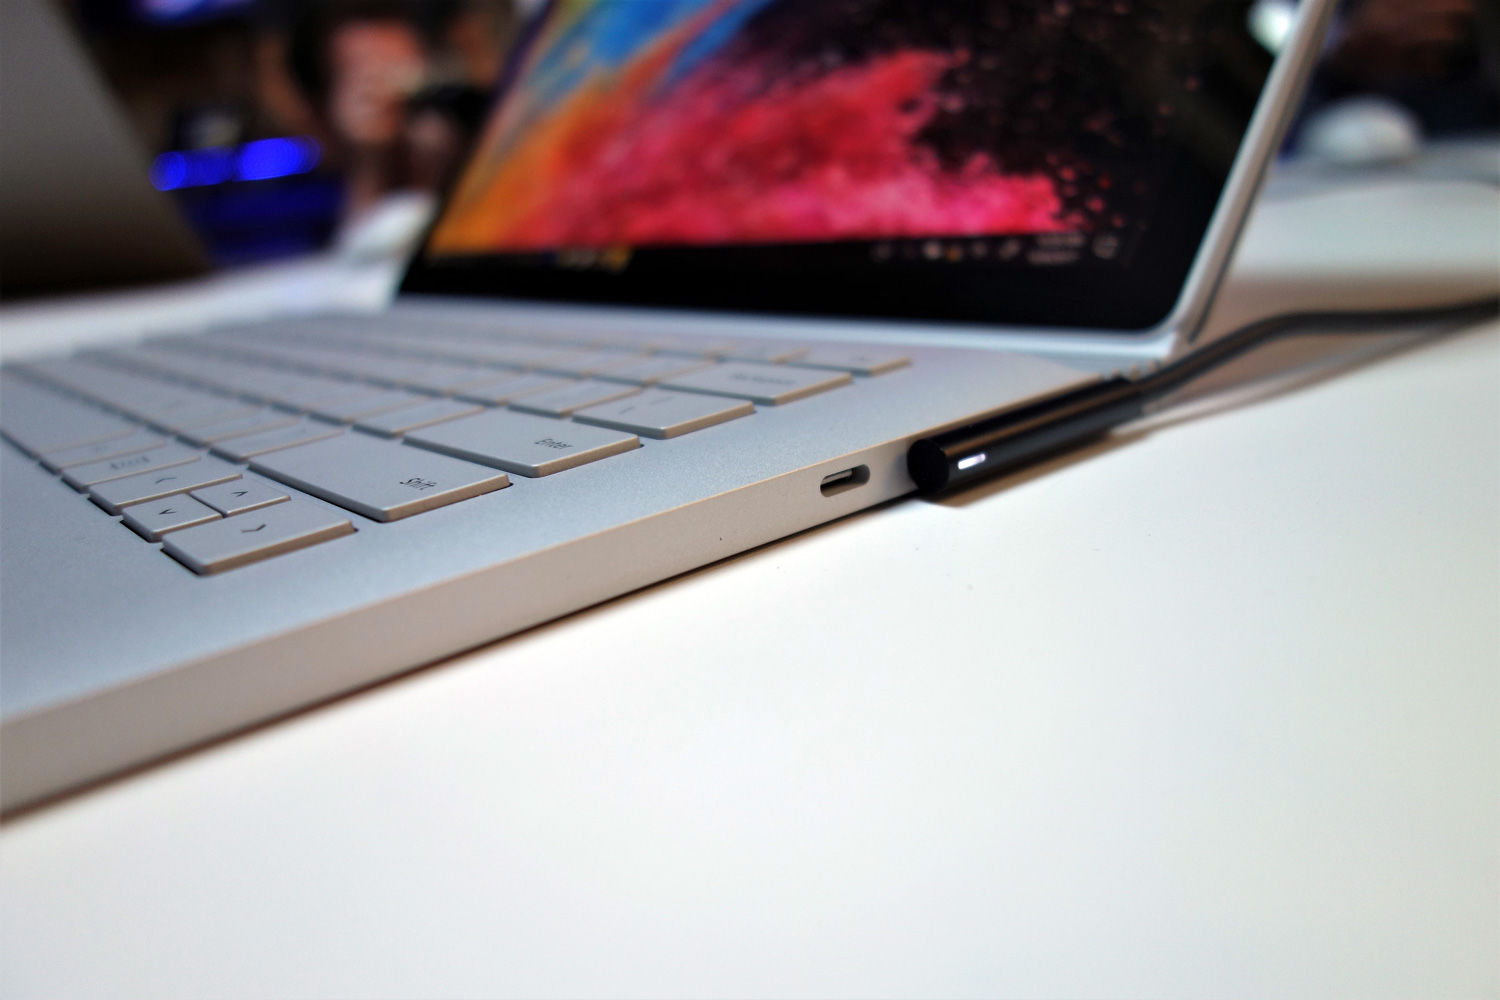 Hands On With Microsofts Surface Book 2 The Pros Super Keyboard Usb Votre Right Next To 2s Port Is A New C